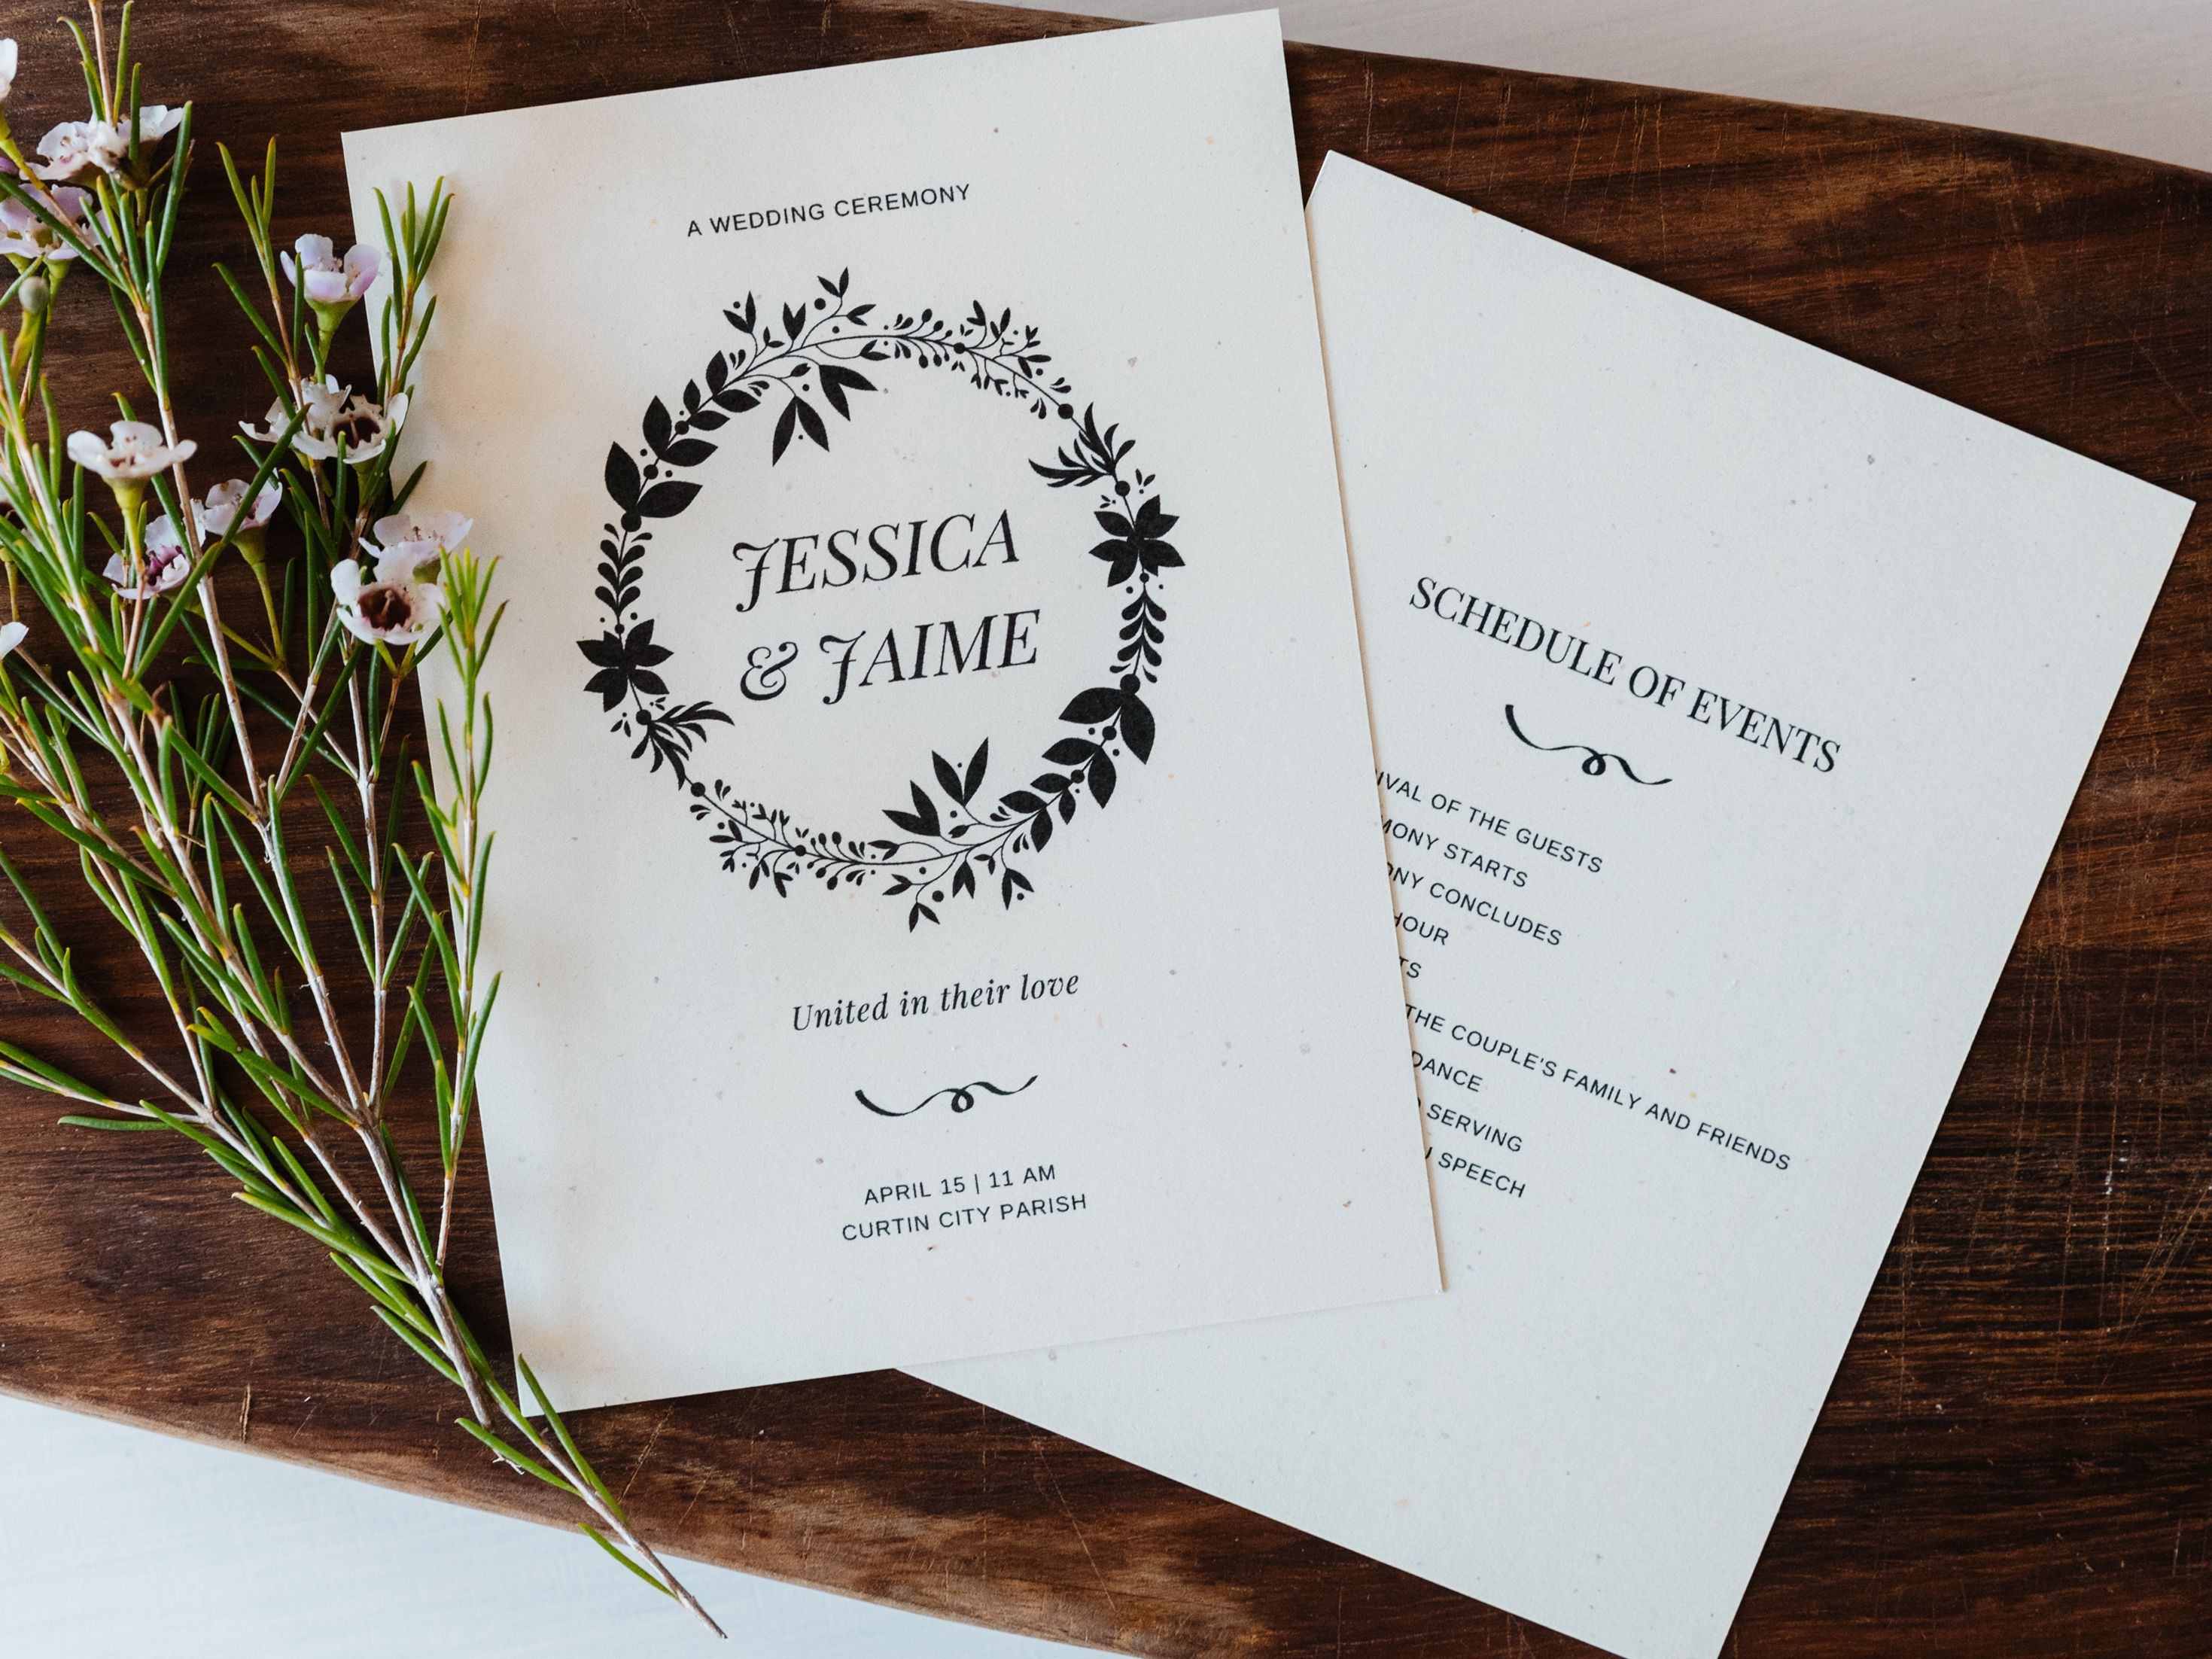 006 Exceptional Free Template For Wedding Ceremony Program Example Full